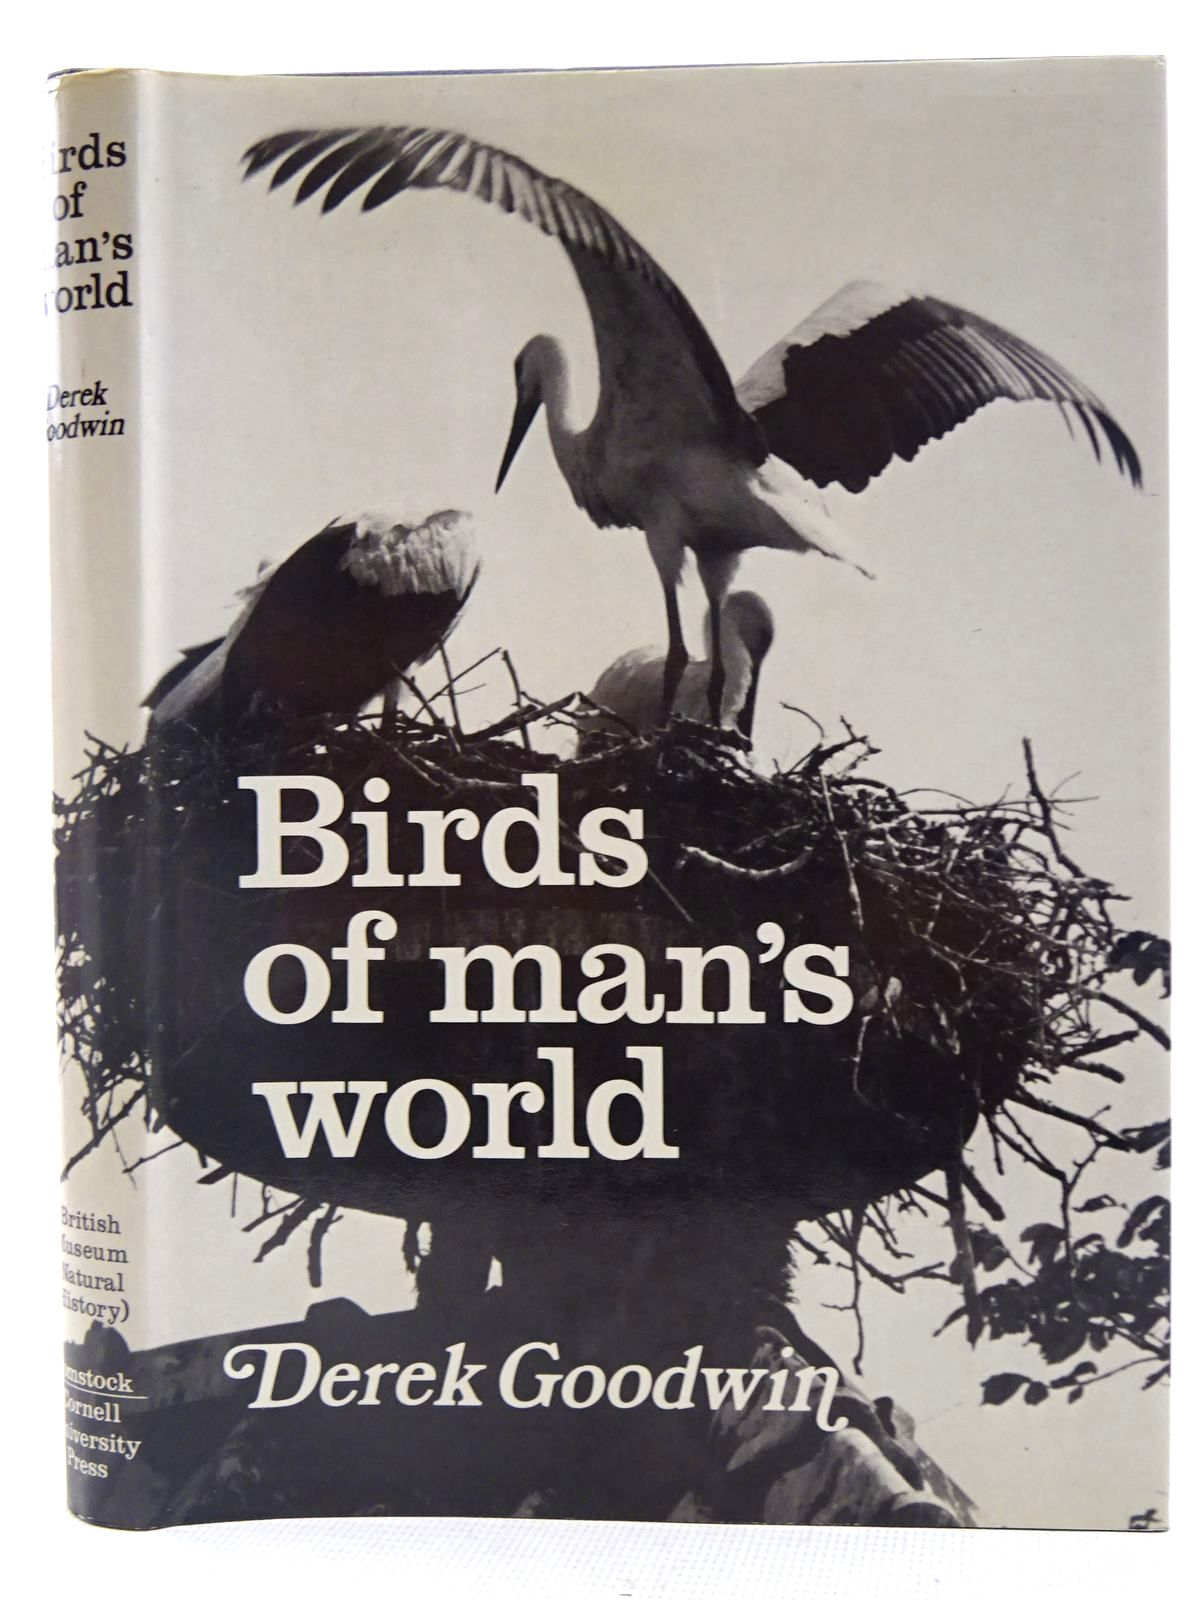 Photo of BIRDS OF MAN'S WORLD written by Goodwin, Derek illustrated by Prytherch, Robin published by British Museum (Natural History), Cornell University Press (STOCK CODE: 2128274)  for sale by Stella & Rose's Books